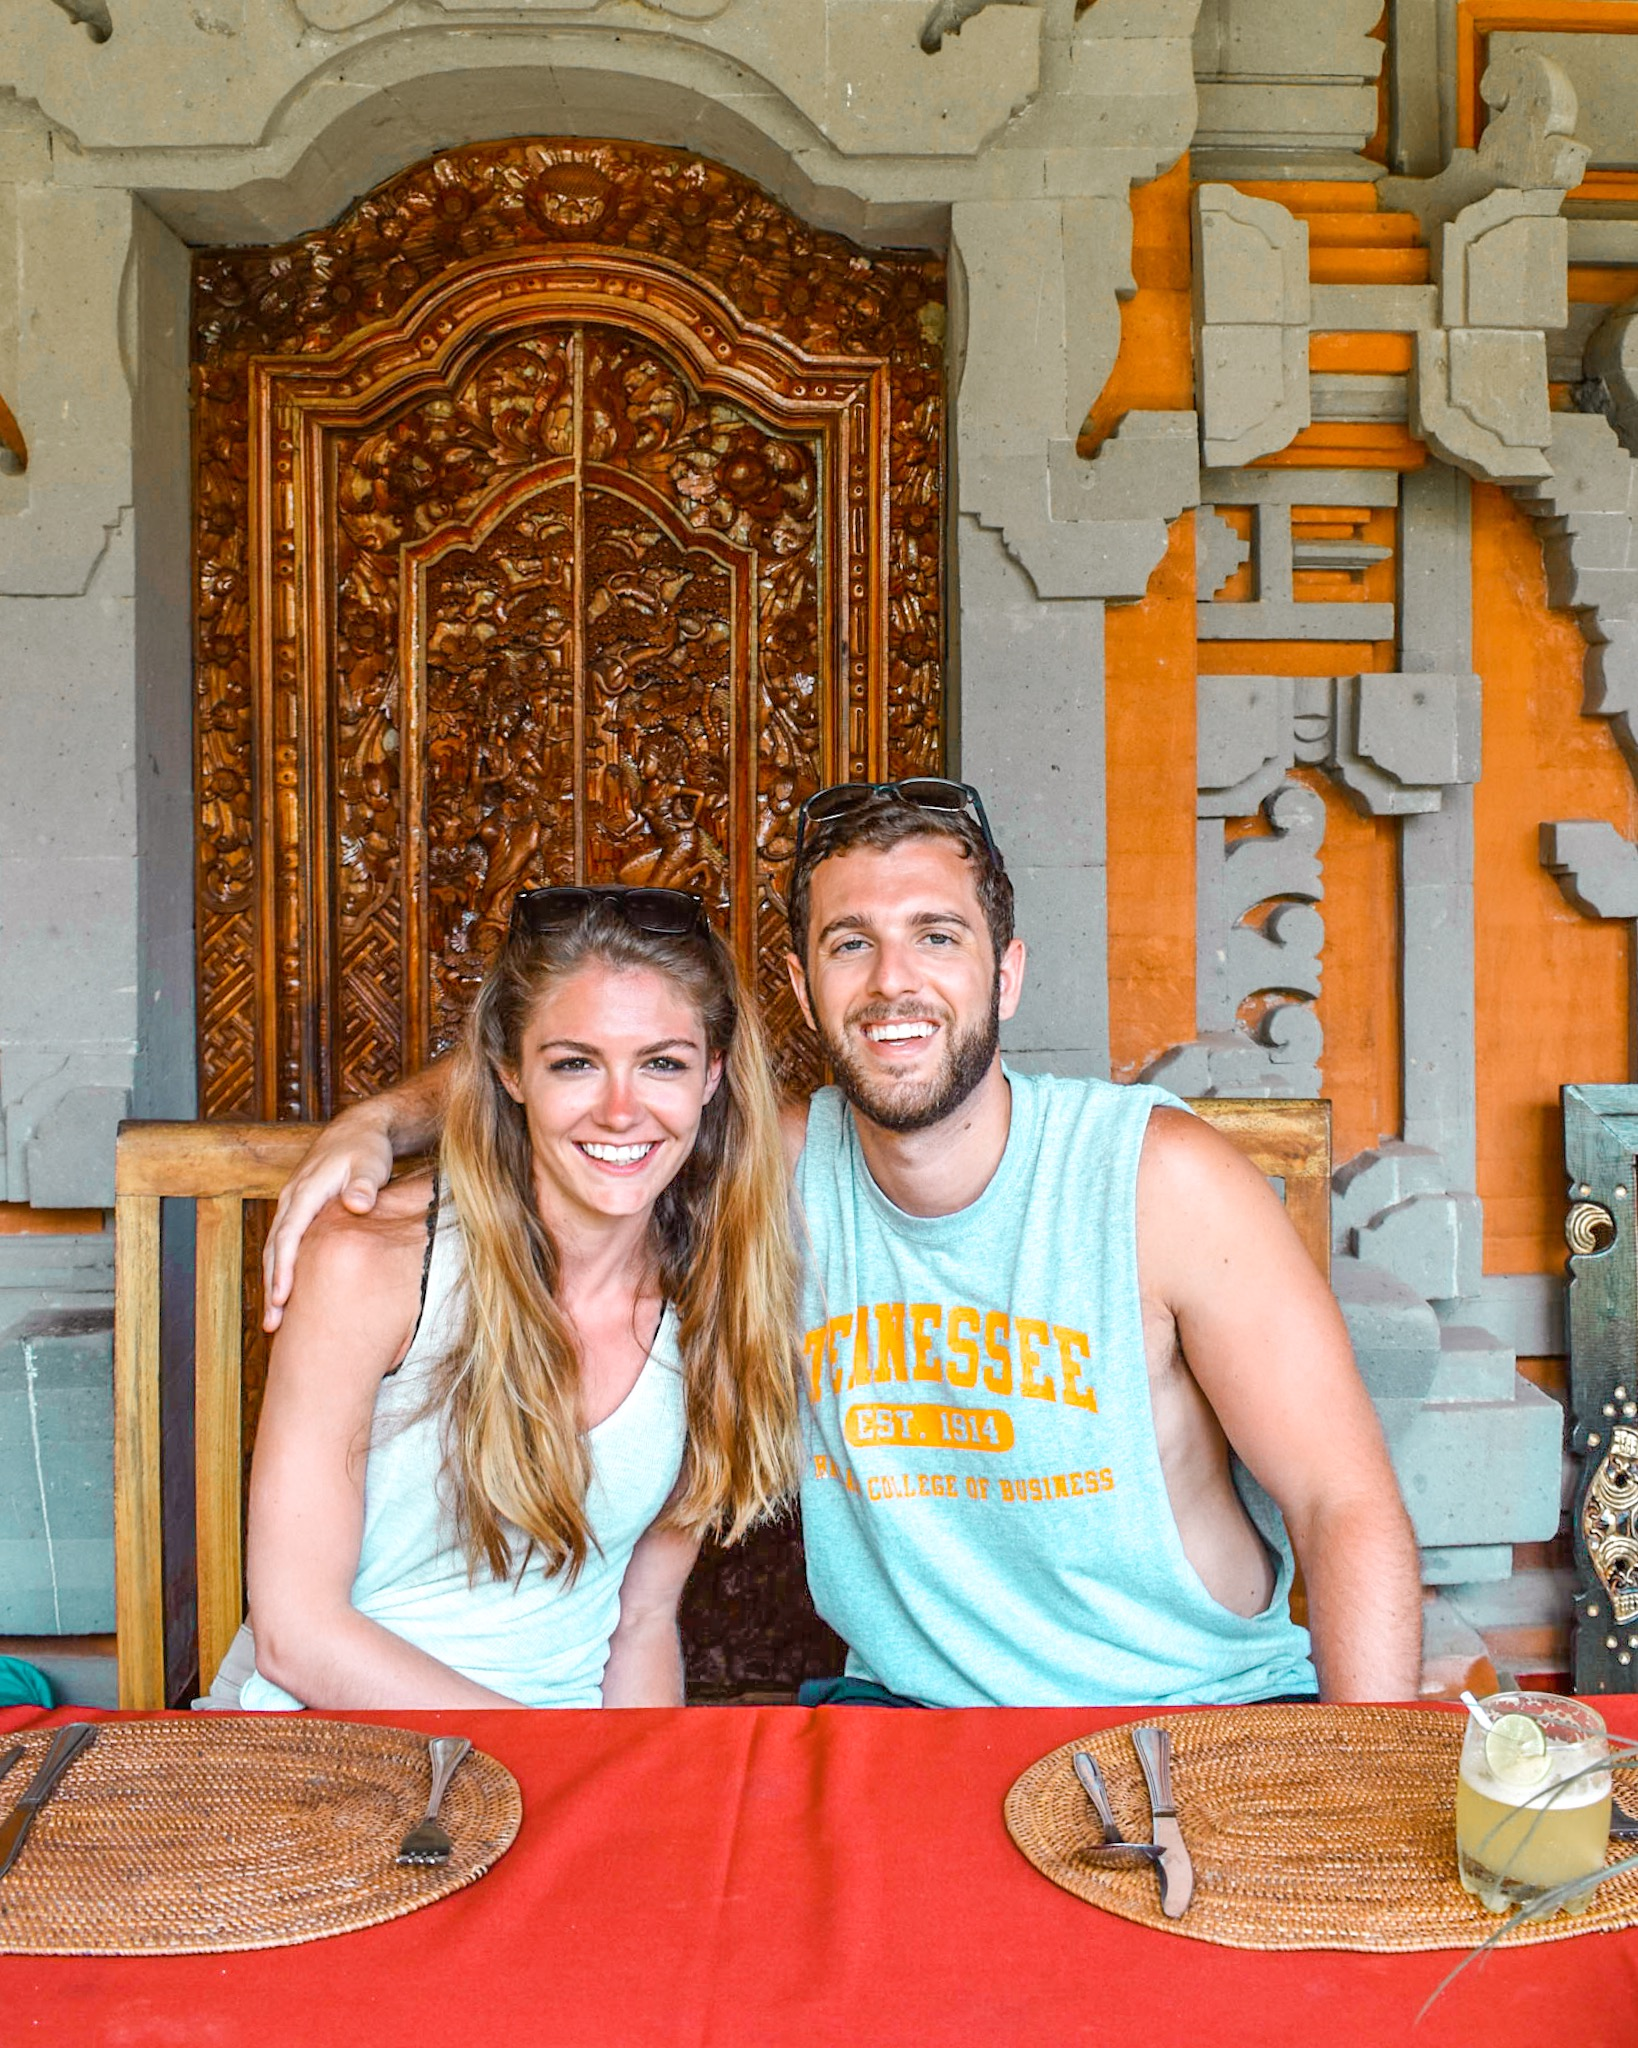 Honeymooners in the Honeymoon Suite of a Traditional Balinese Home